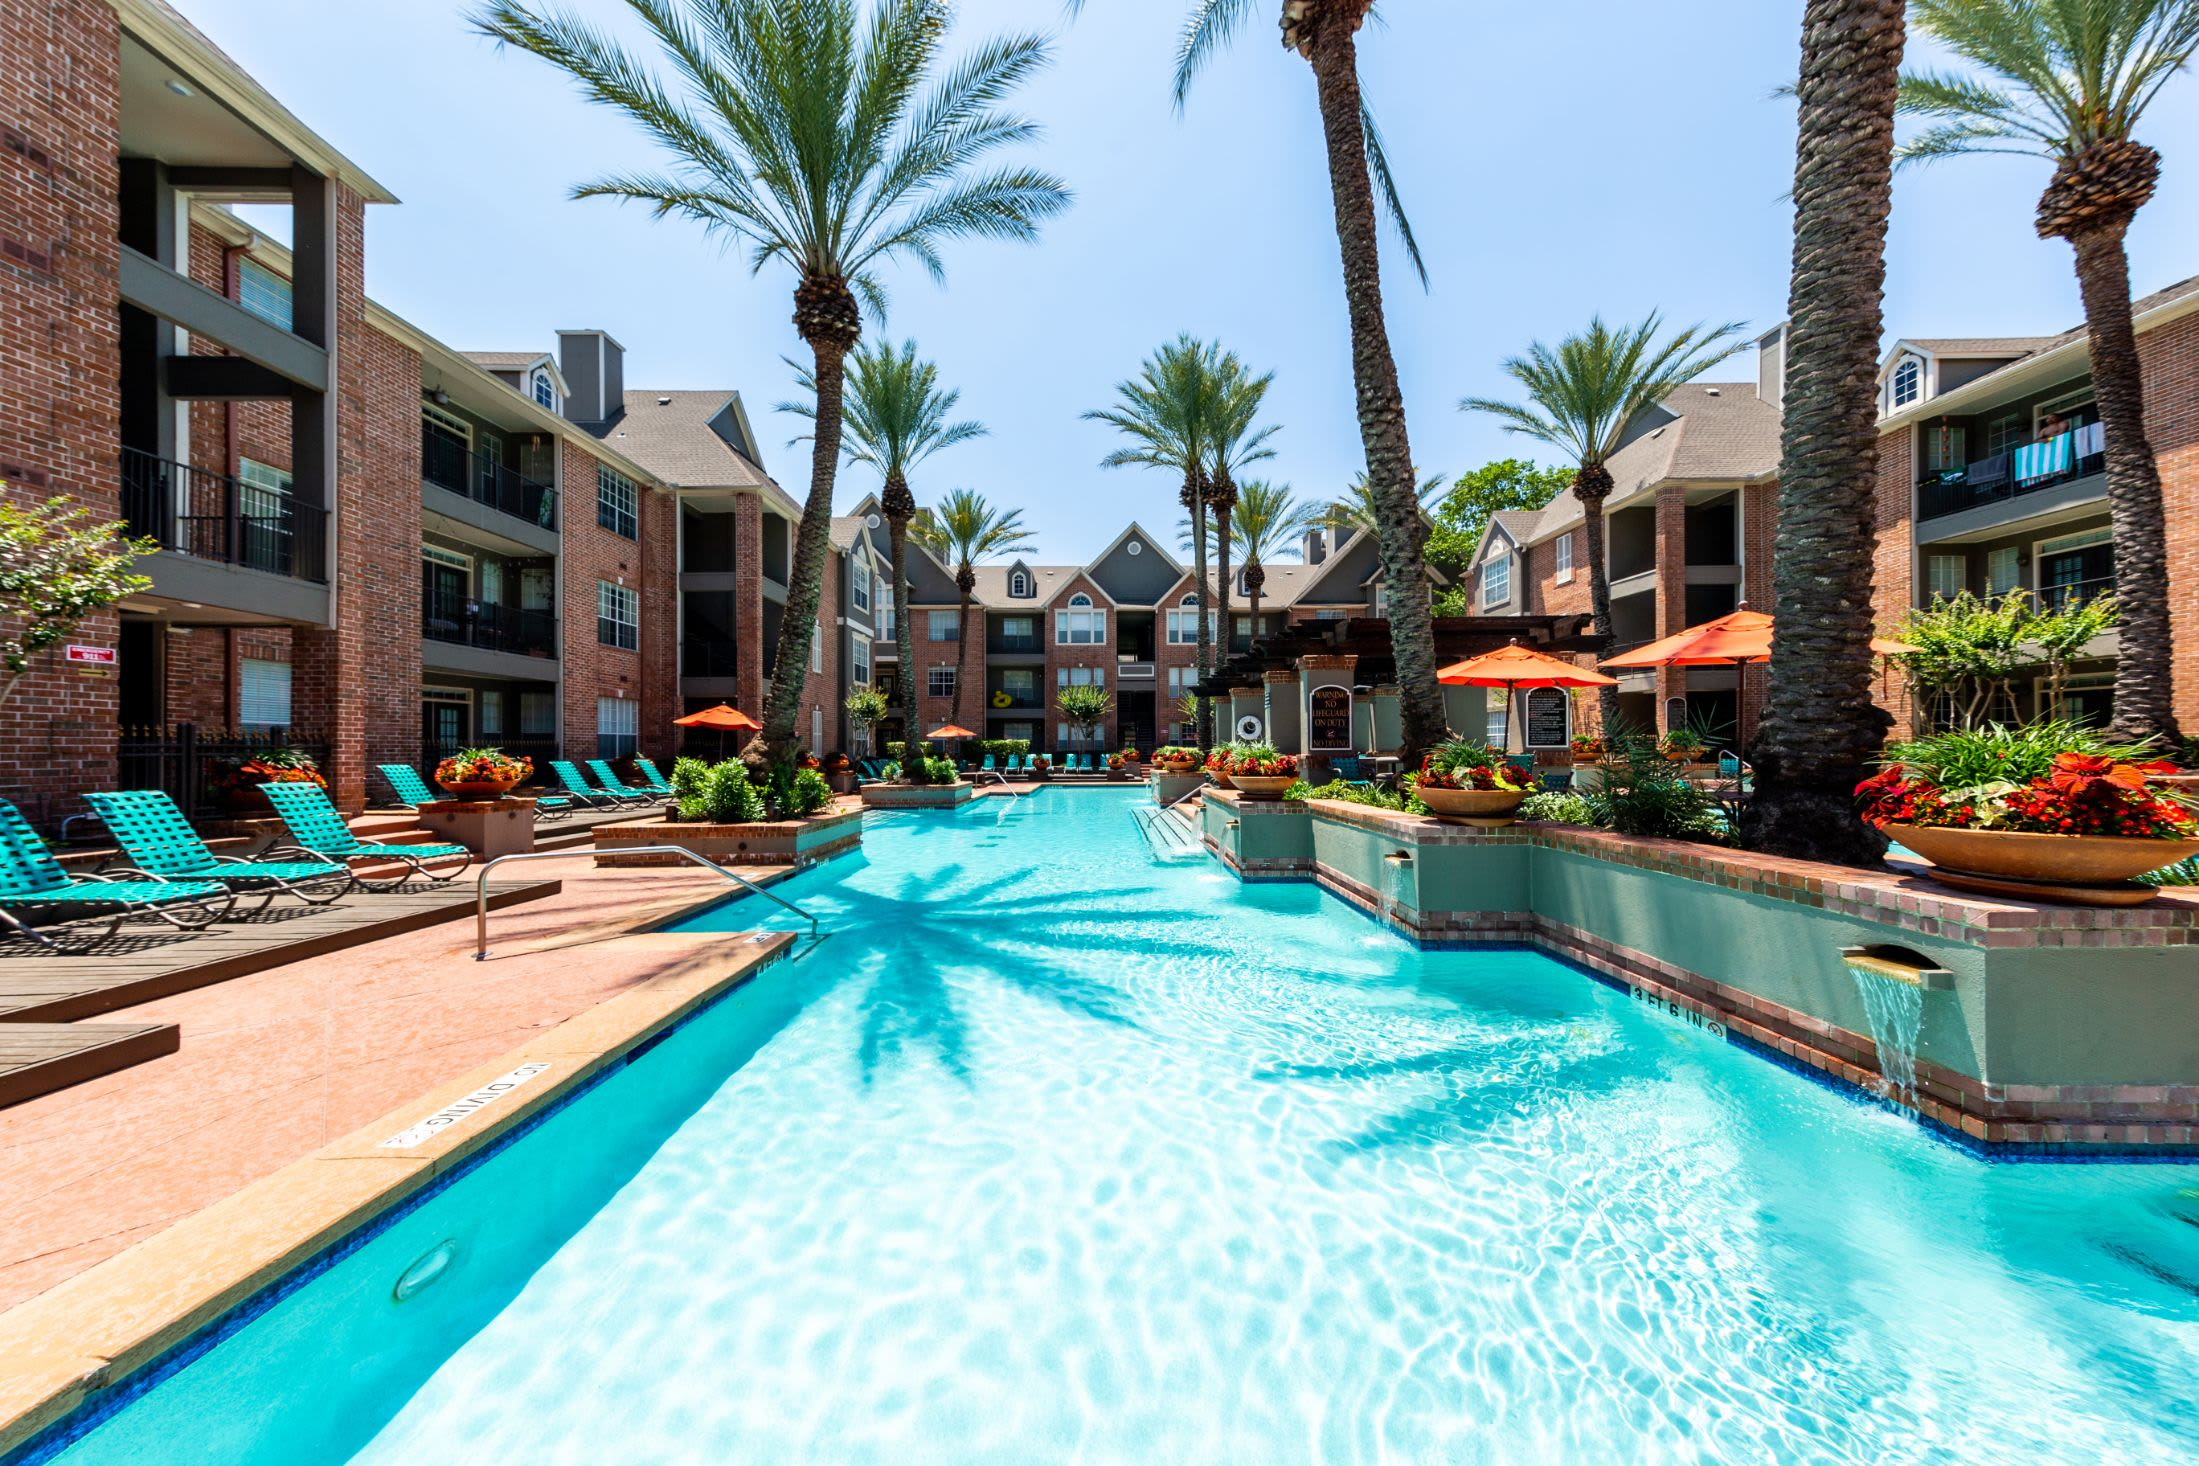 Resort style pool with palm trees at Marquis on Pin Oak in Houston, Texas